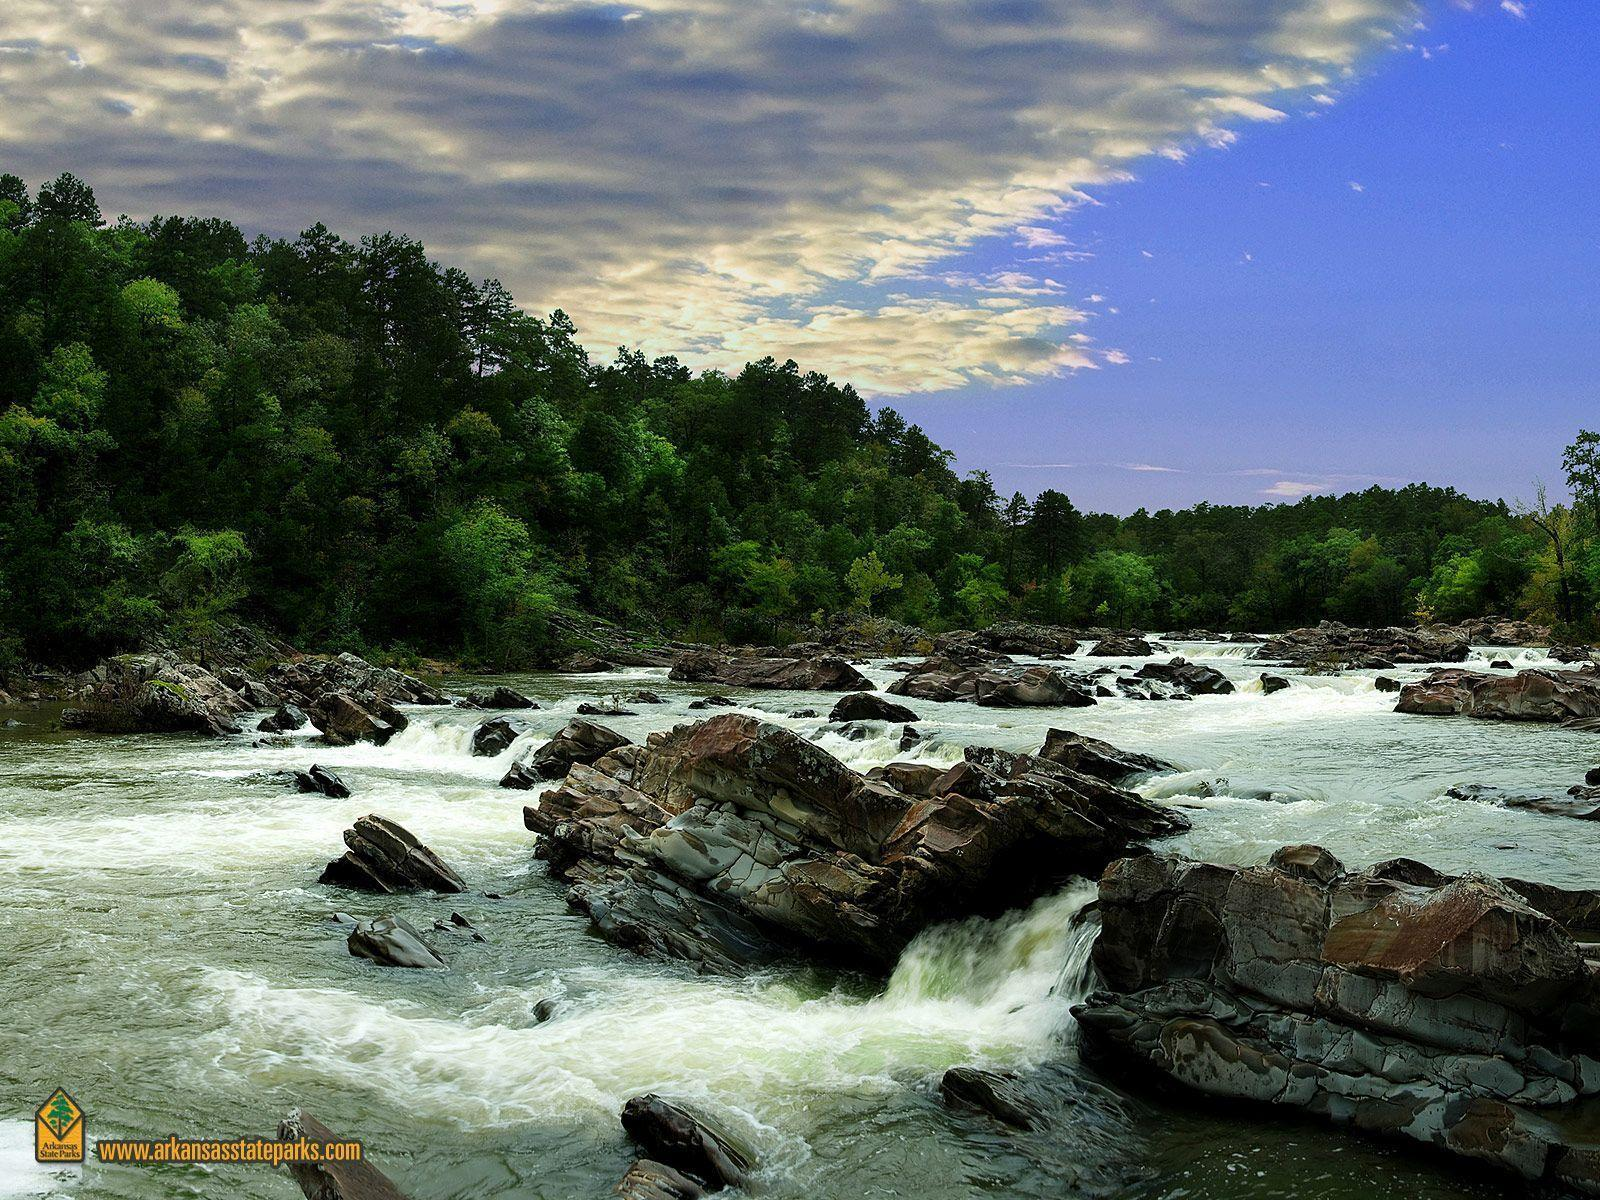 Wallpapers - Arkansas State Parks